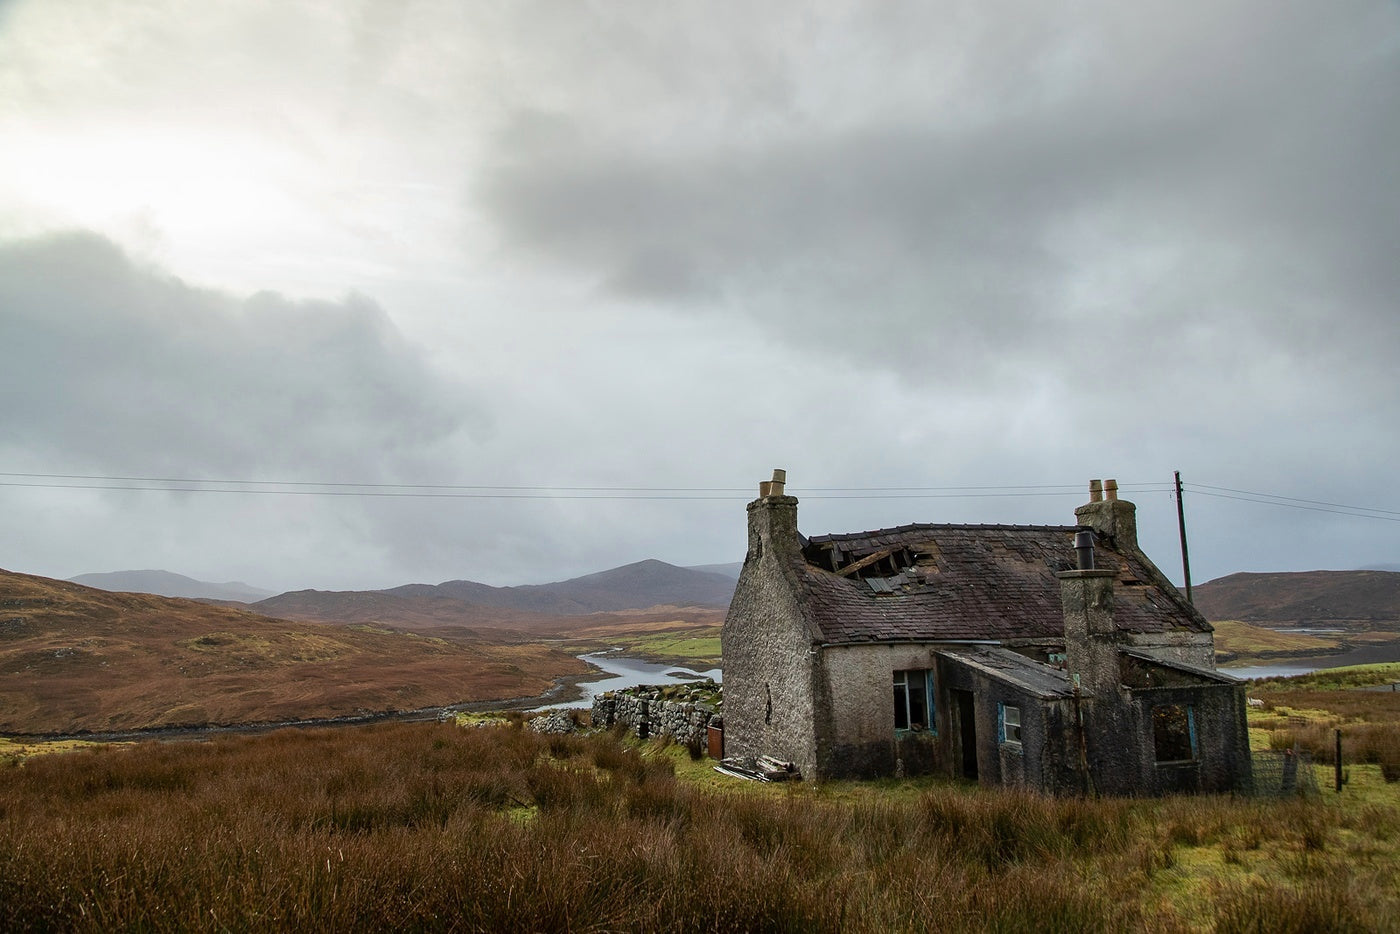 An abandoned dwelling blends into the landscape somewhere on the Isle of Lewis